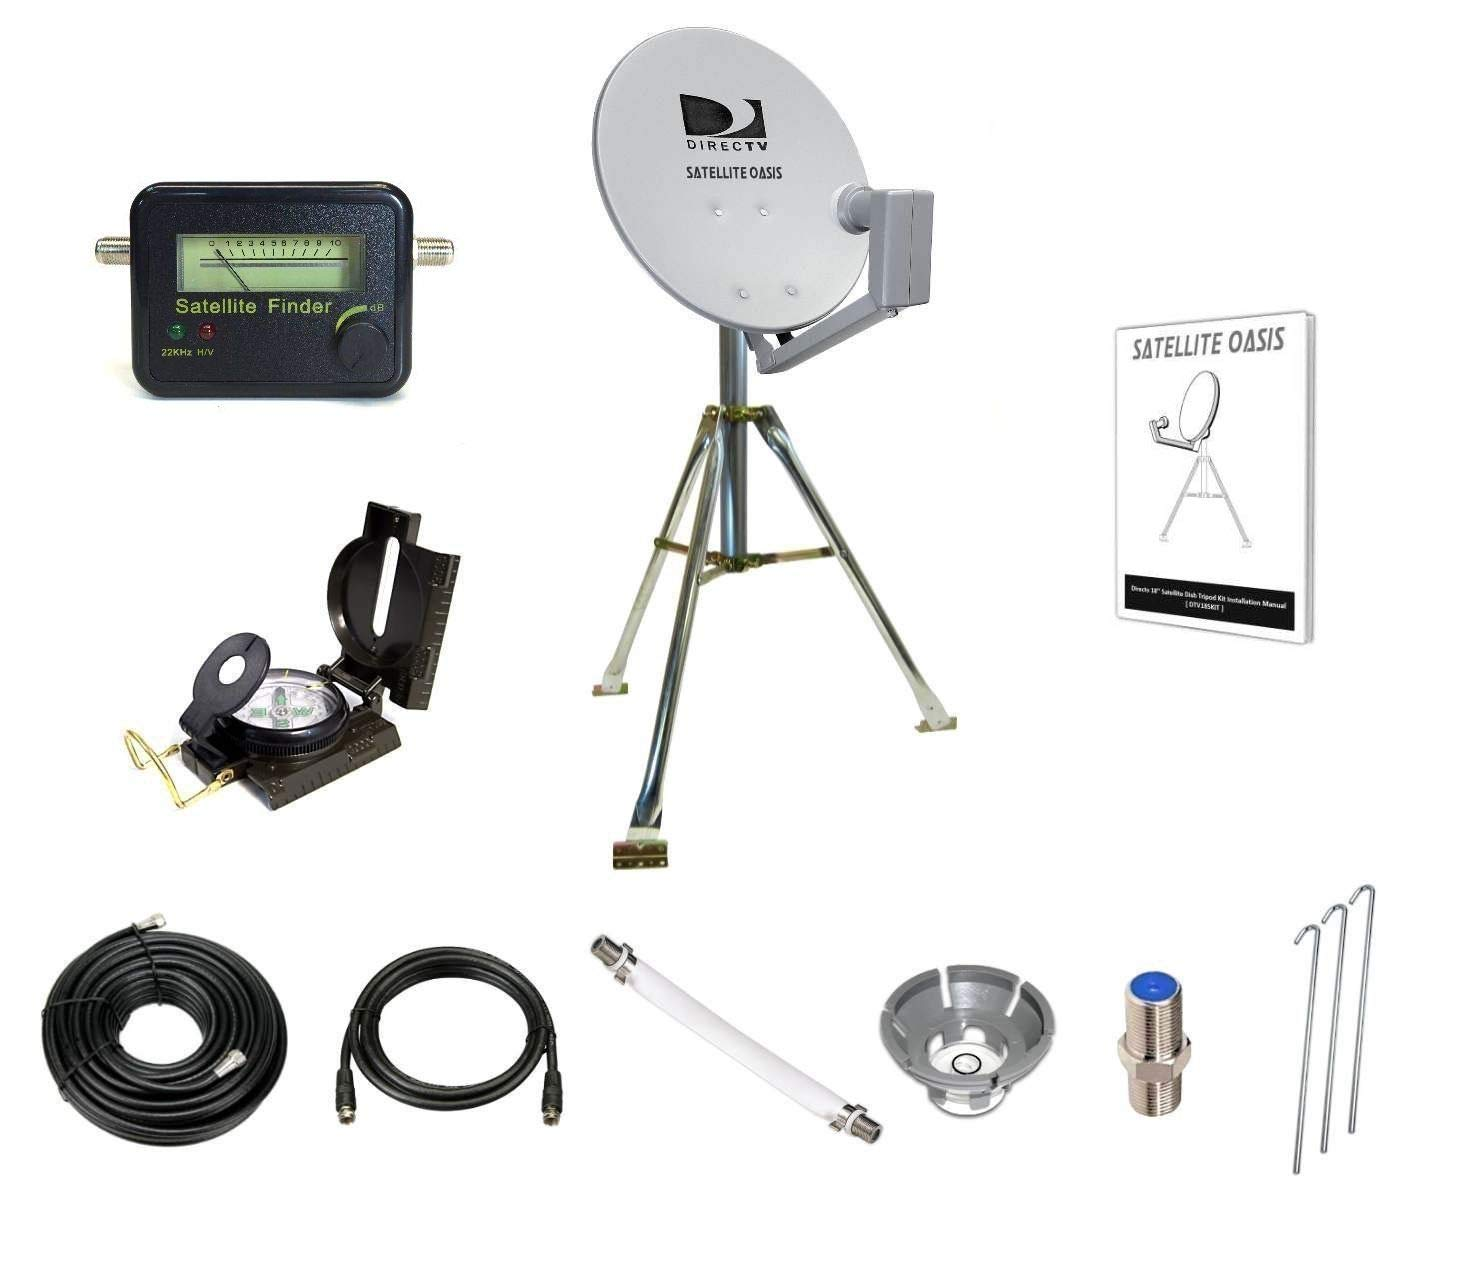 Satellite Oasis Directv 18'' Satellite Dish Rv Tripod Kit